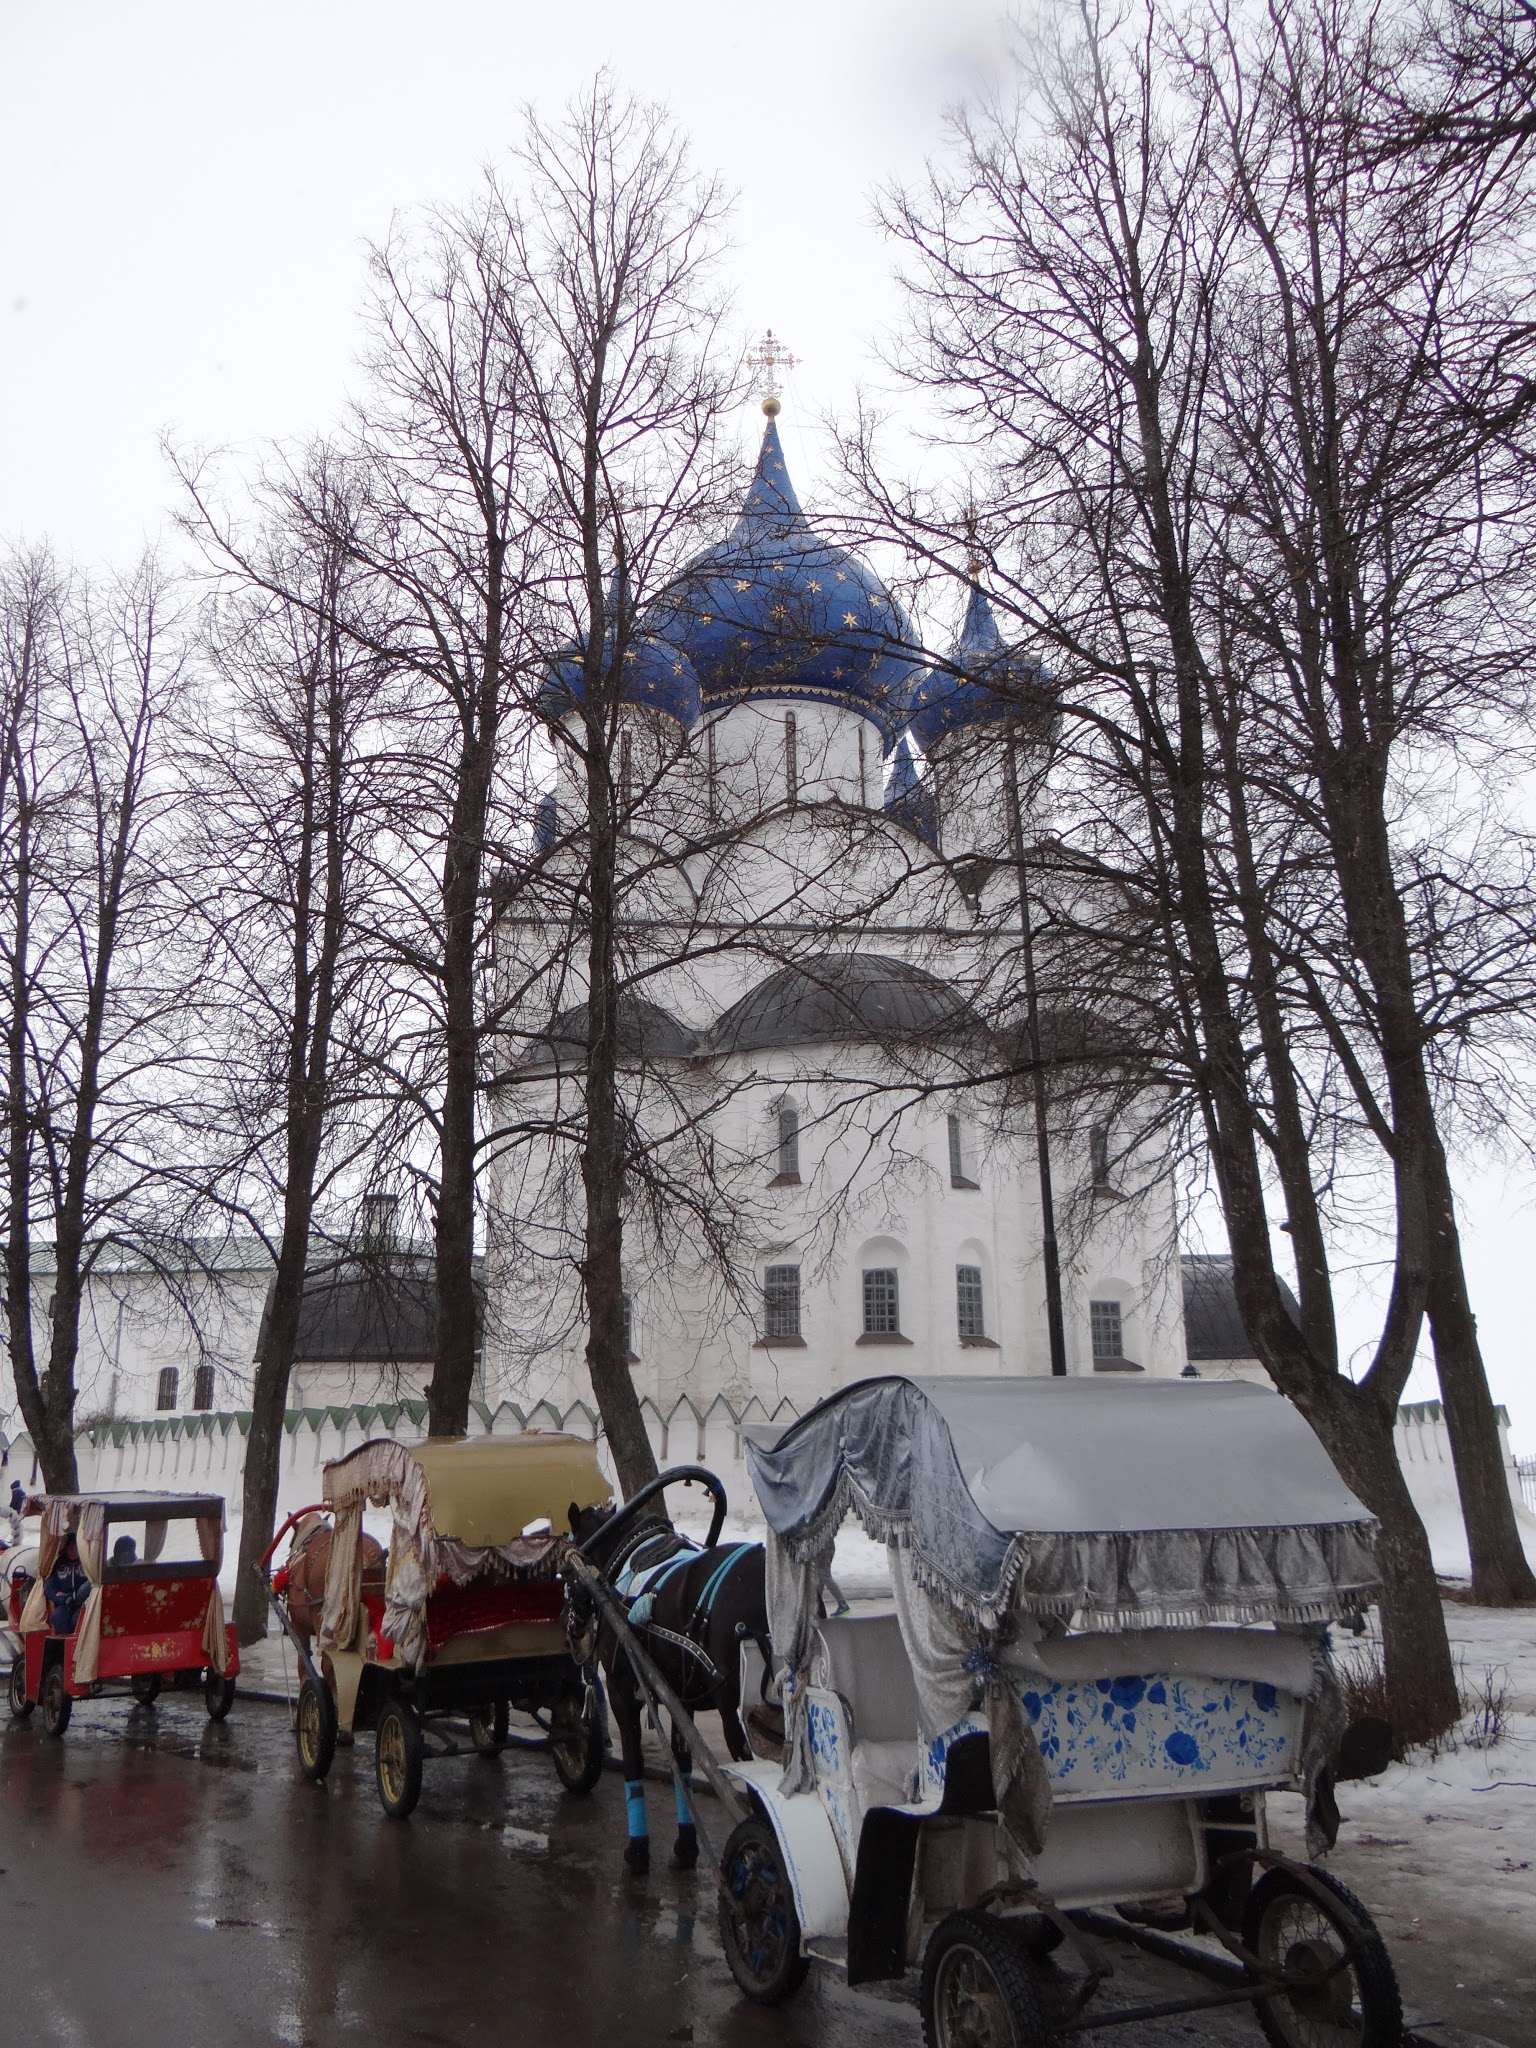 """A way to move around Suzdal are these traditional Russian carriages called """"troikas"""" because they have three wheels. Charming or tourist trap? your call, but I must say they look good in their setting…"""